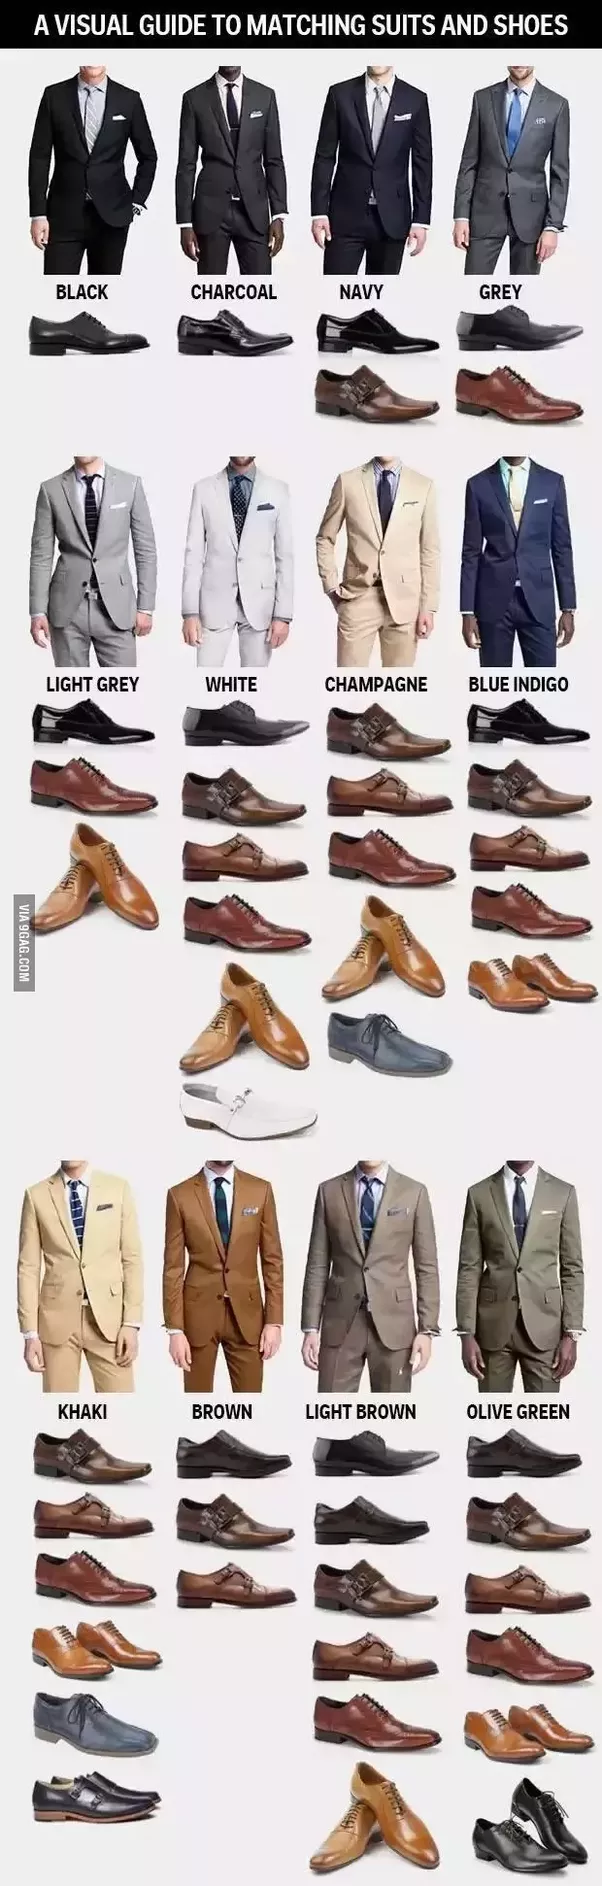 What Color Shoes Should I Wear With A Gray Blazer Quora